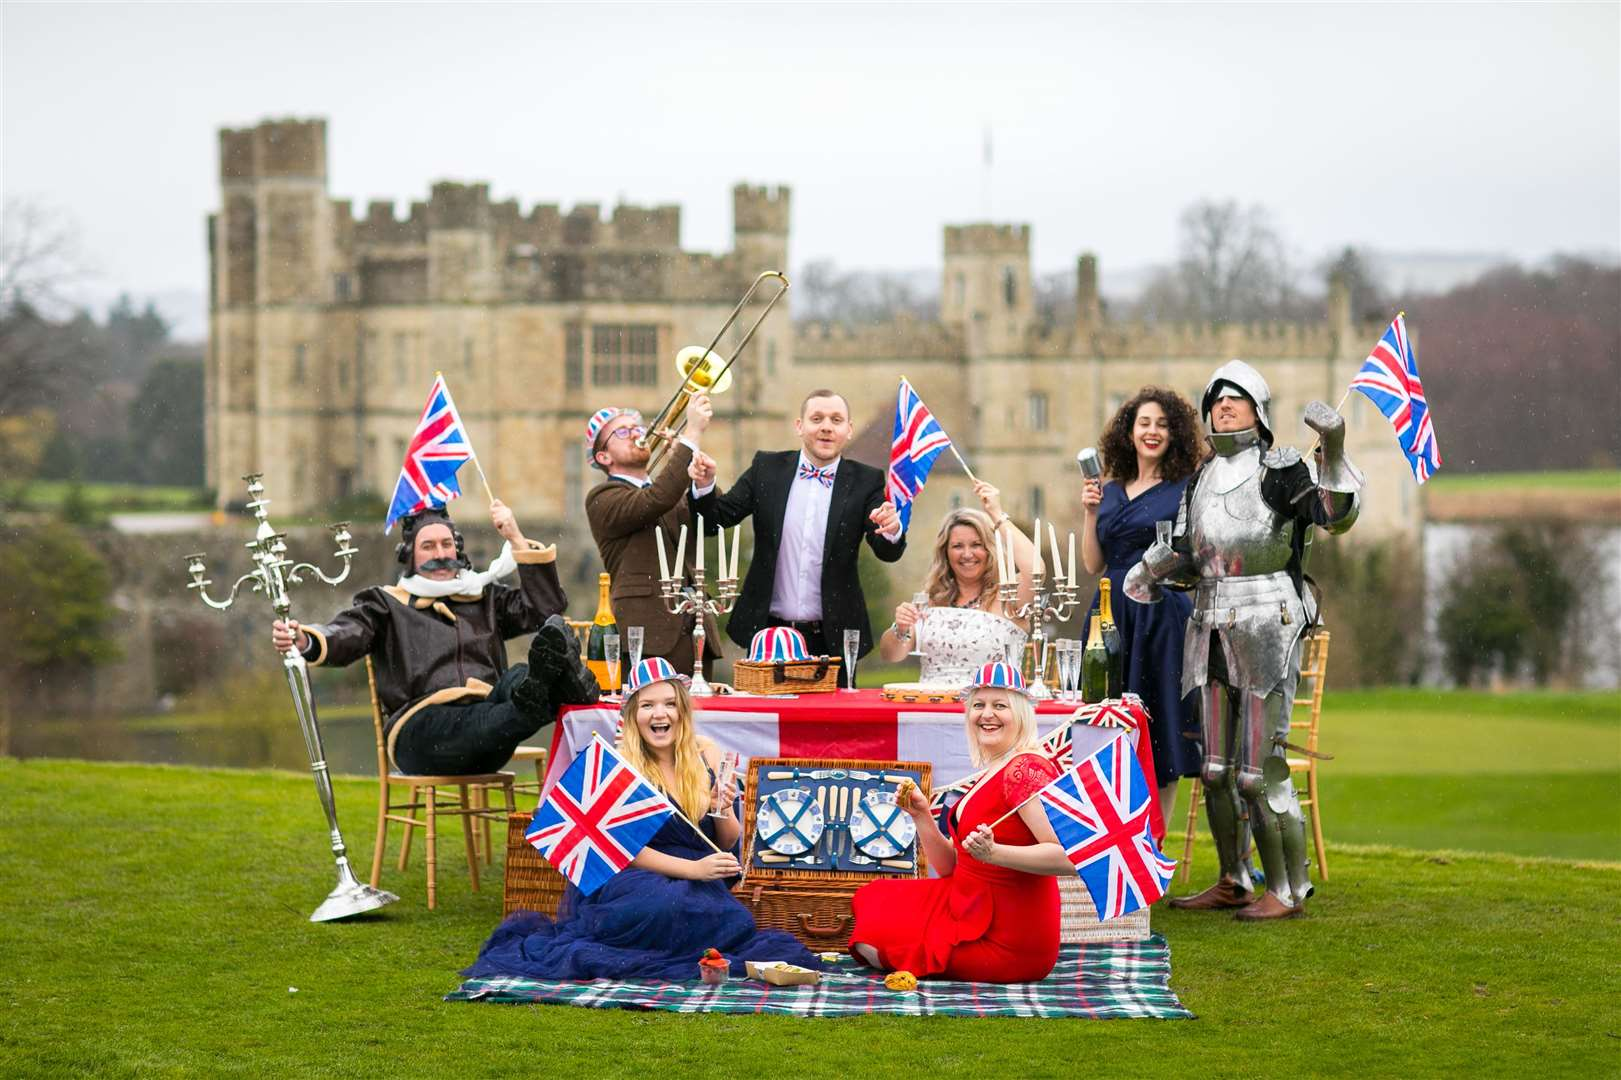 The Leeds Castle Concert will be held this July